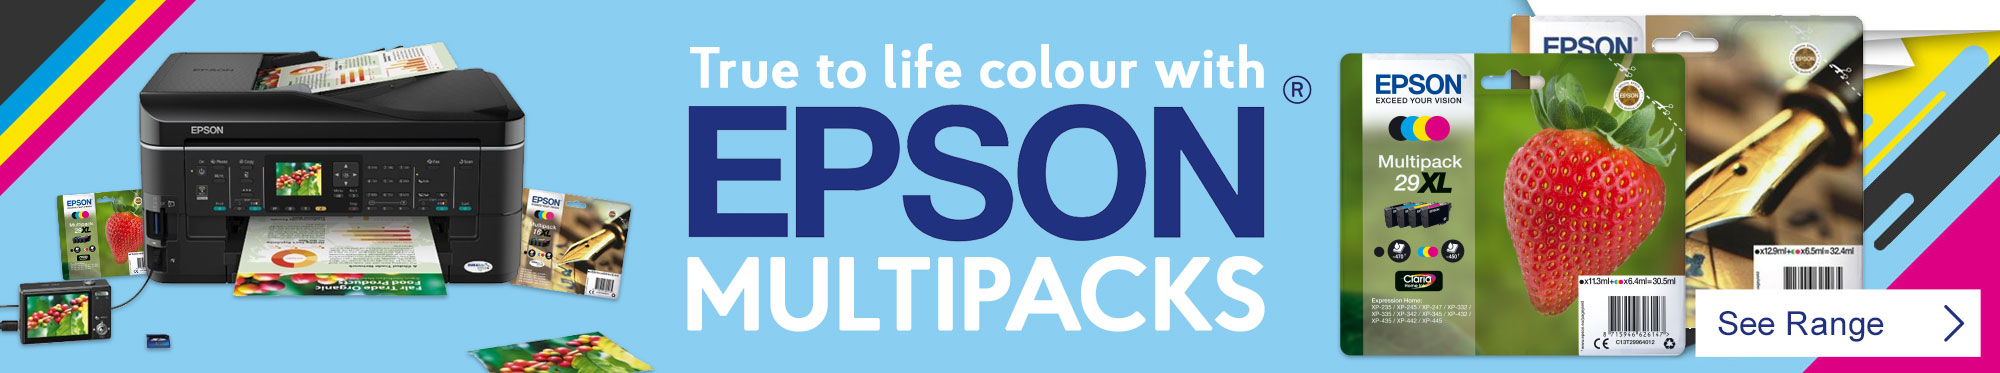 True to Life Photos and Graphics with Epson Multipacks